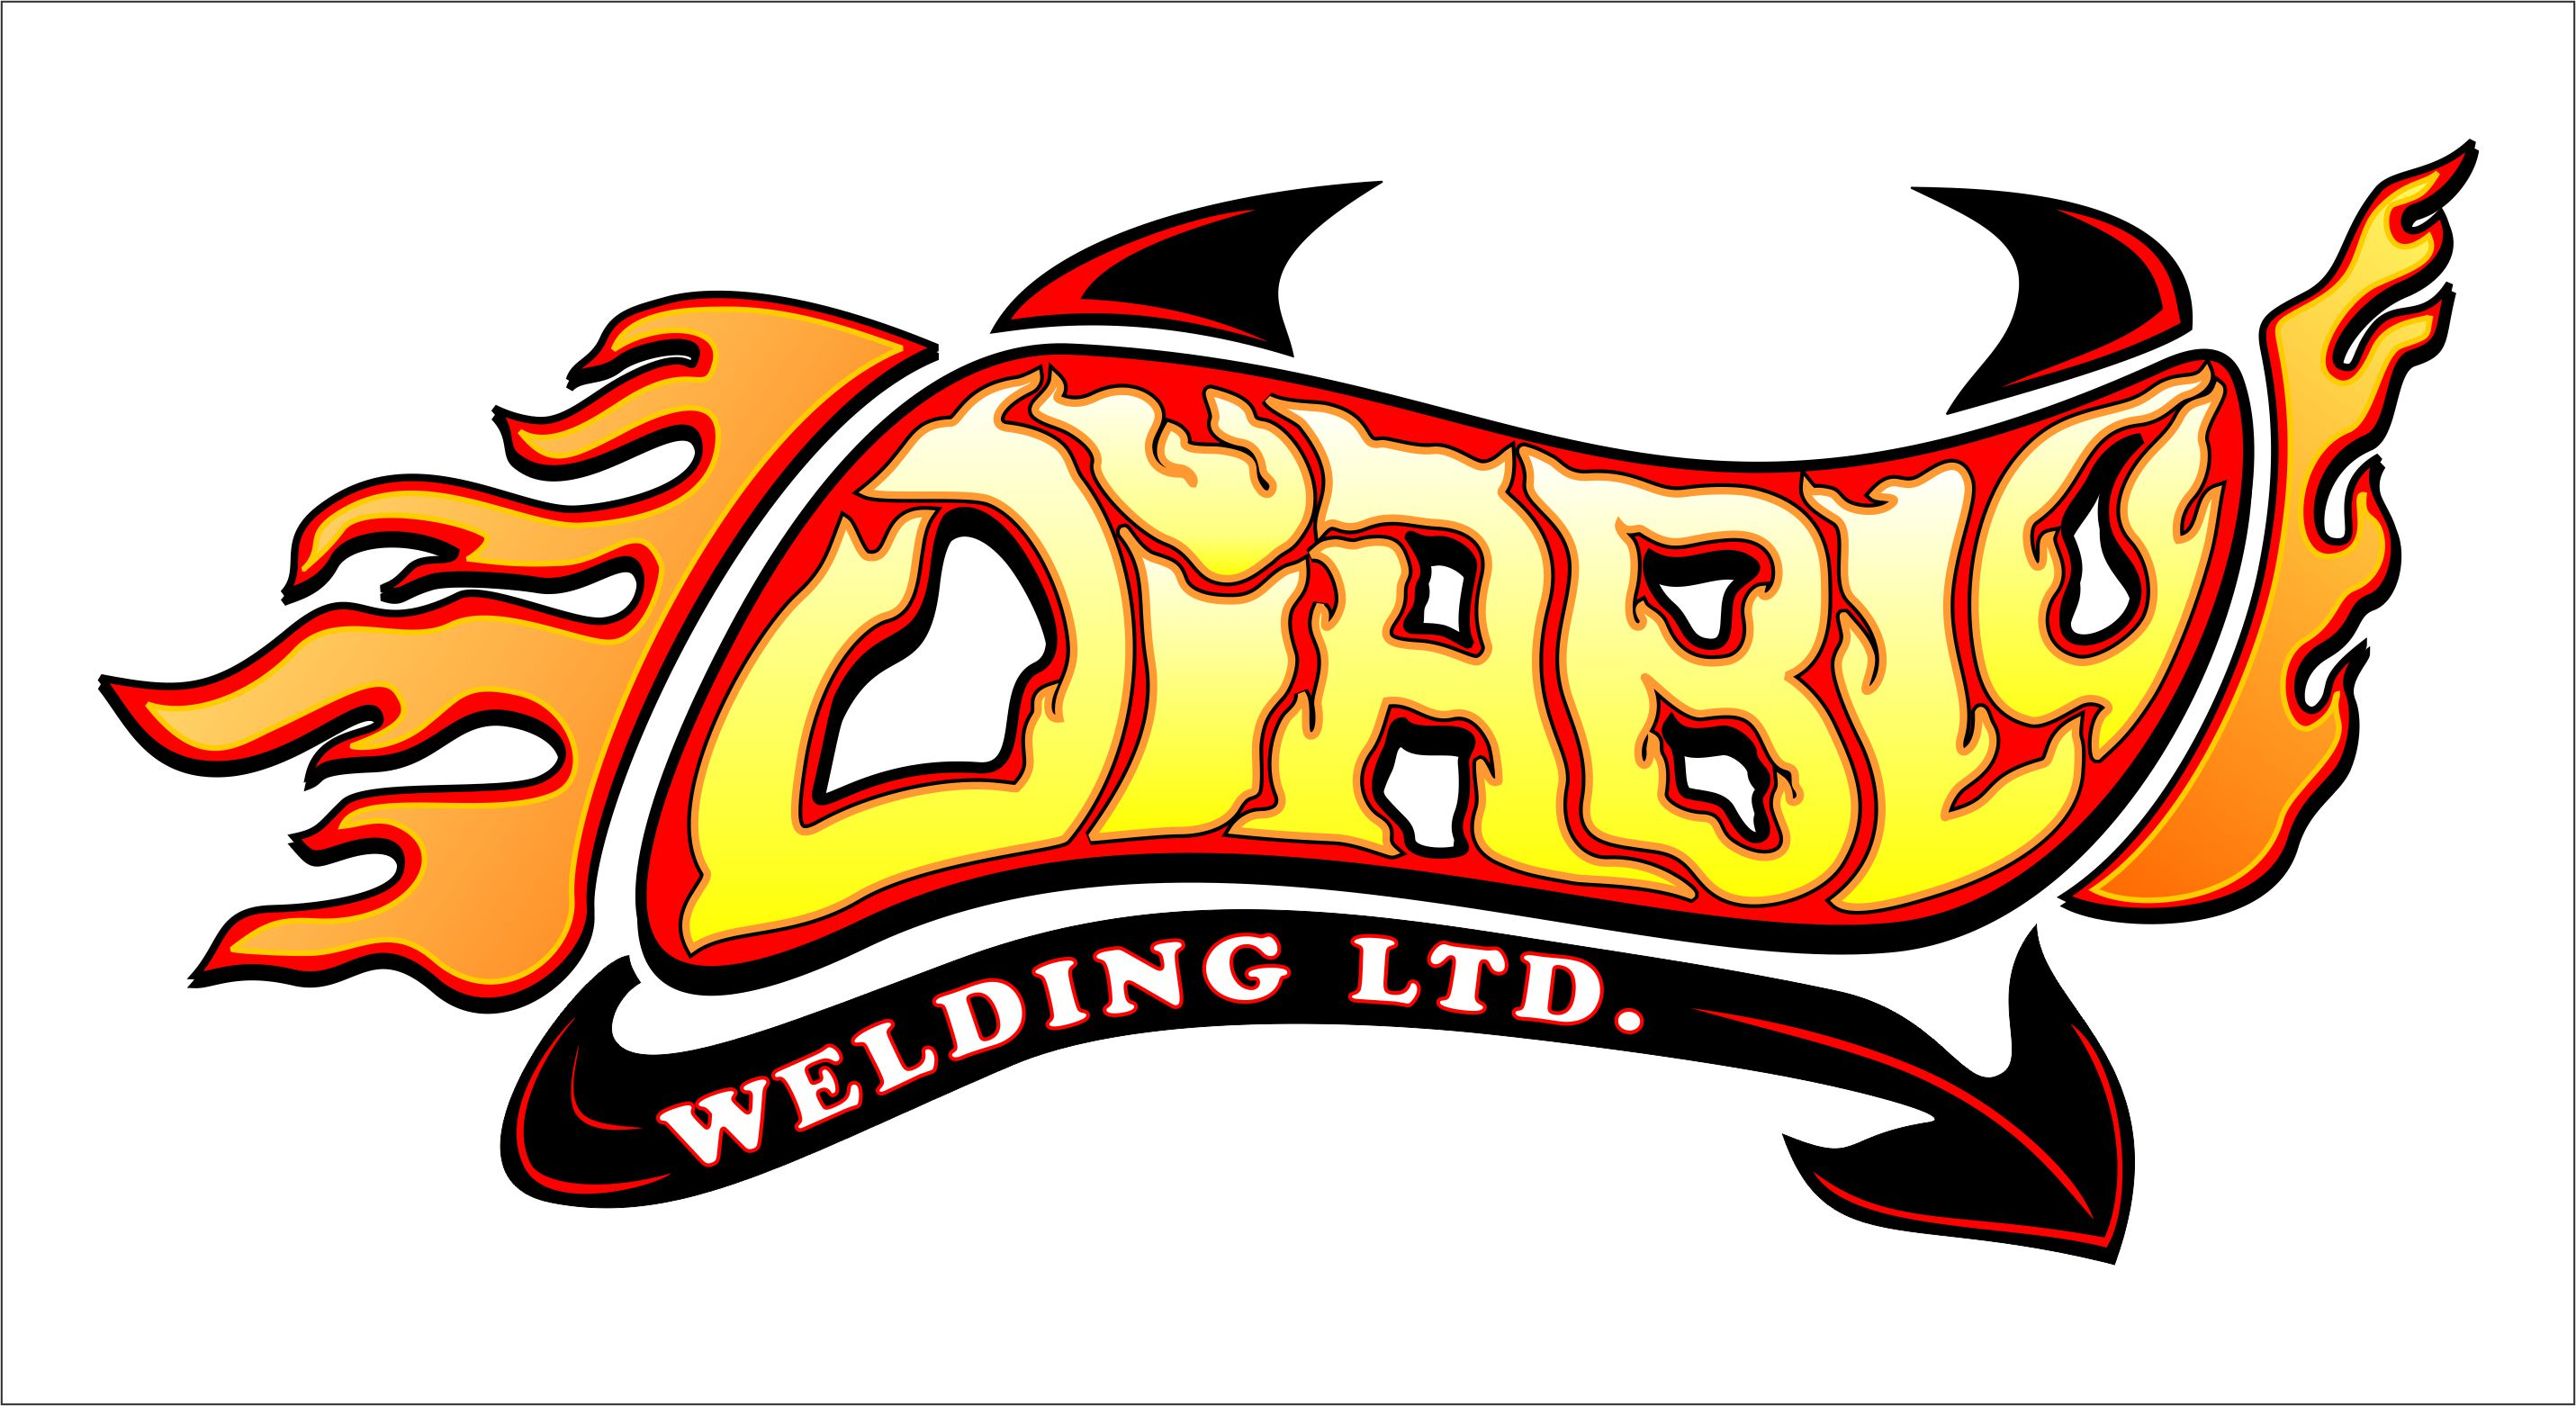 Logo Design by joca - Entry No. 88 in the Logo Design Contest New Logo Design for Diablo Welding Ltd..